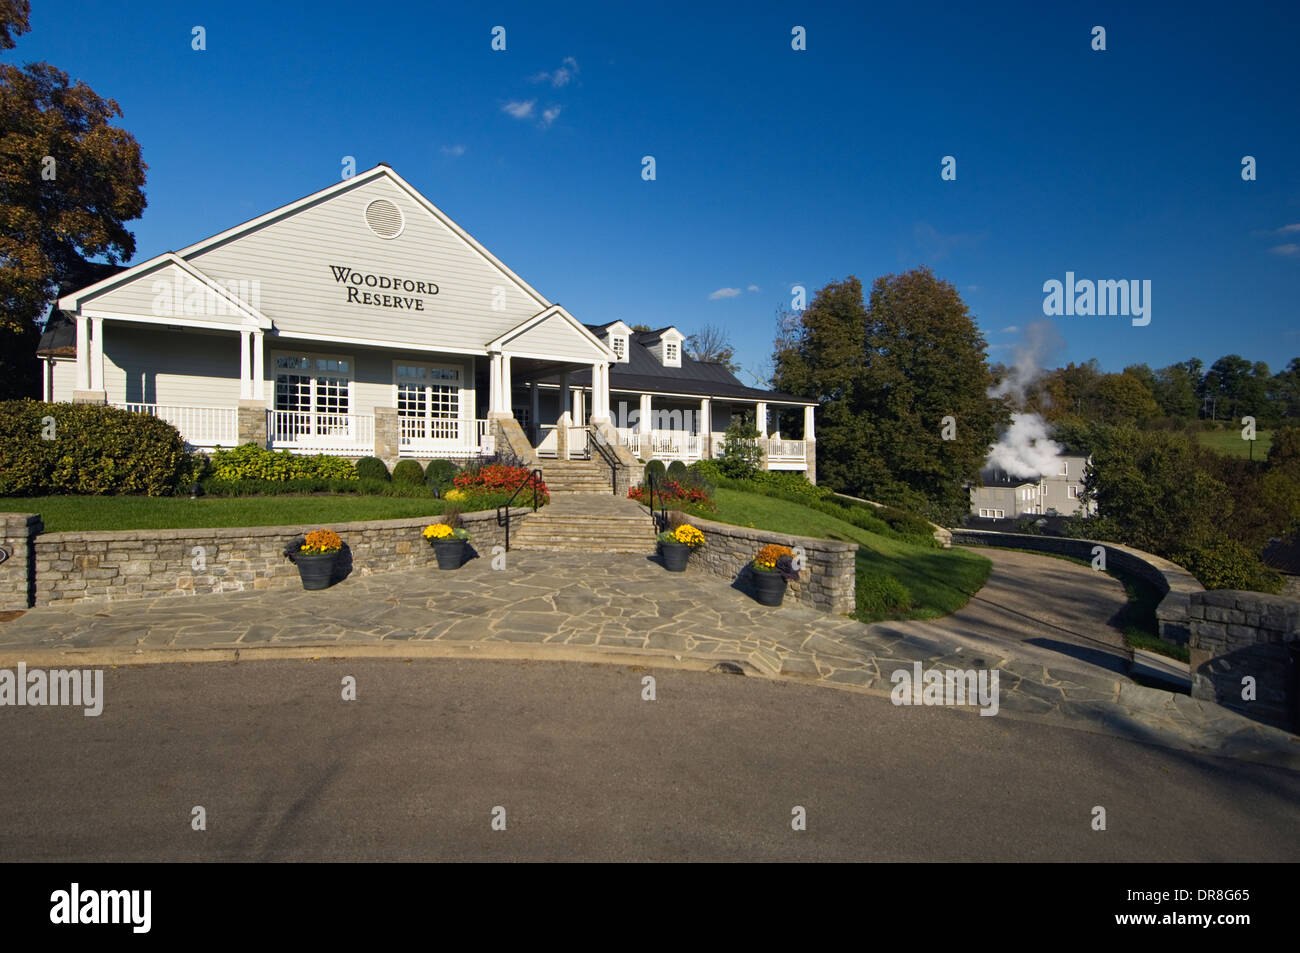 Woodford Reserve Visitor Center and Distillery in Woodford County, Kentucky - Stock Image